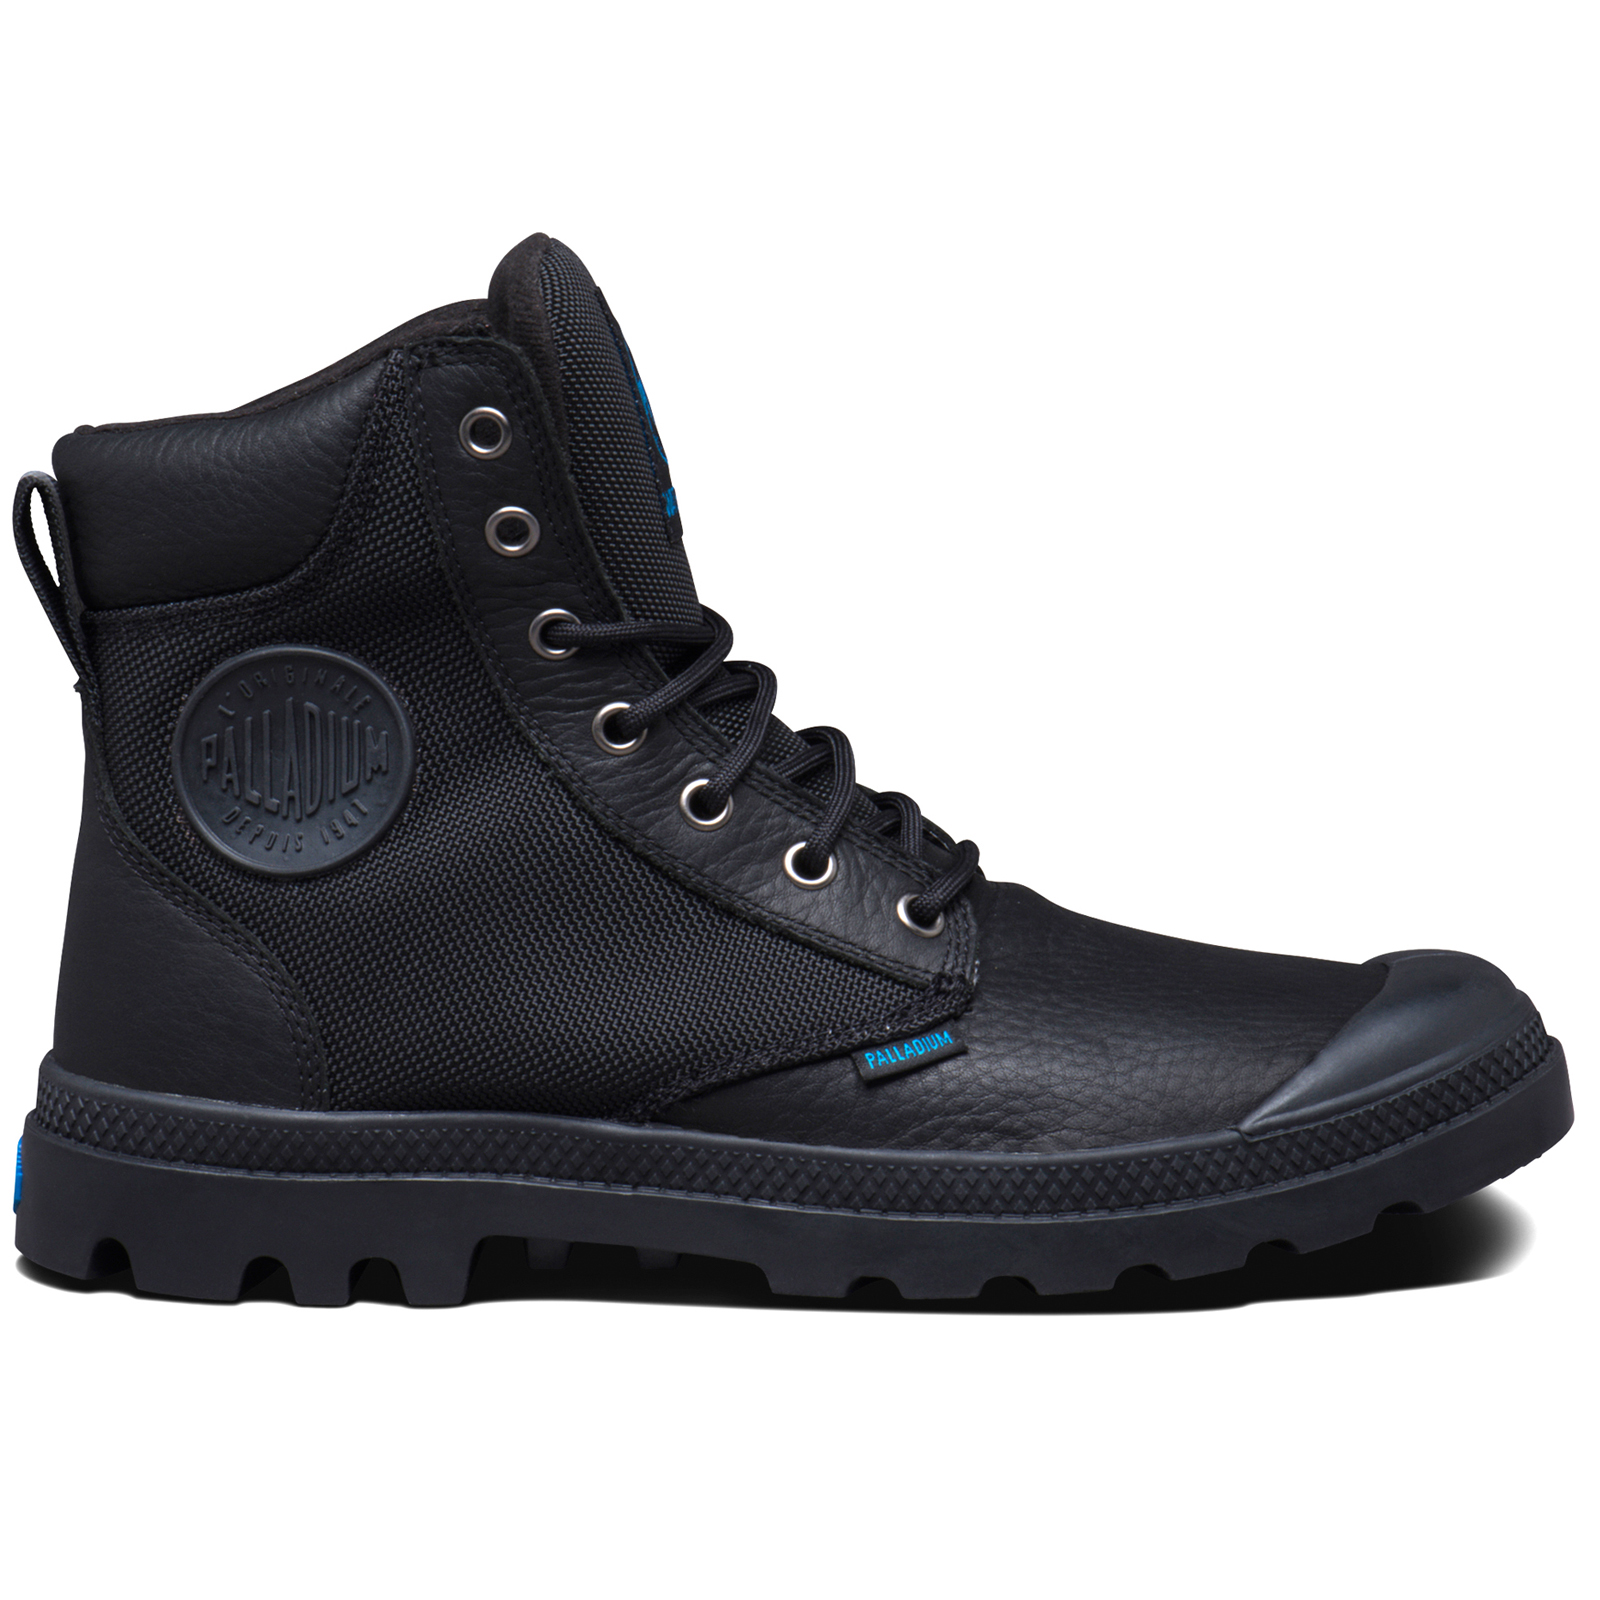 Mens Mid Top Waterproof Walking Shoes